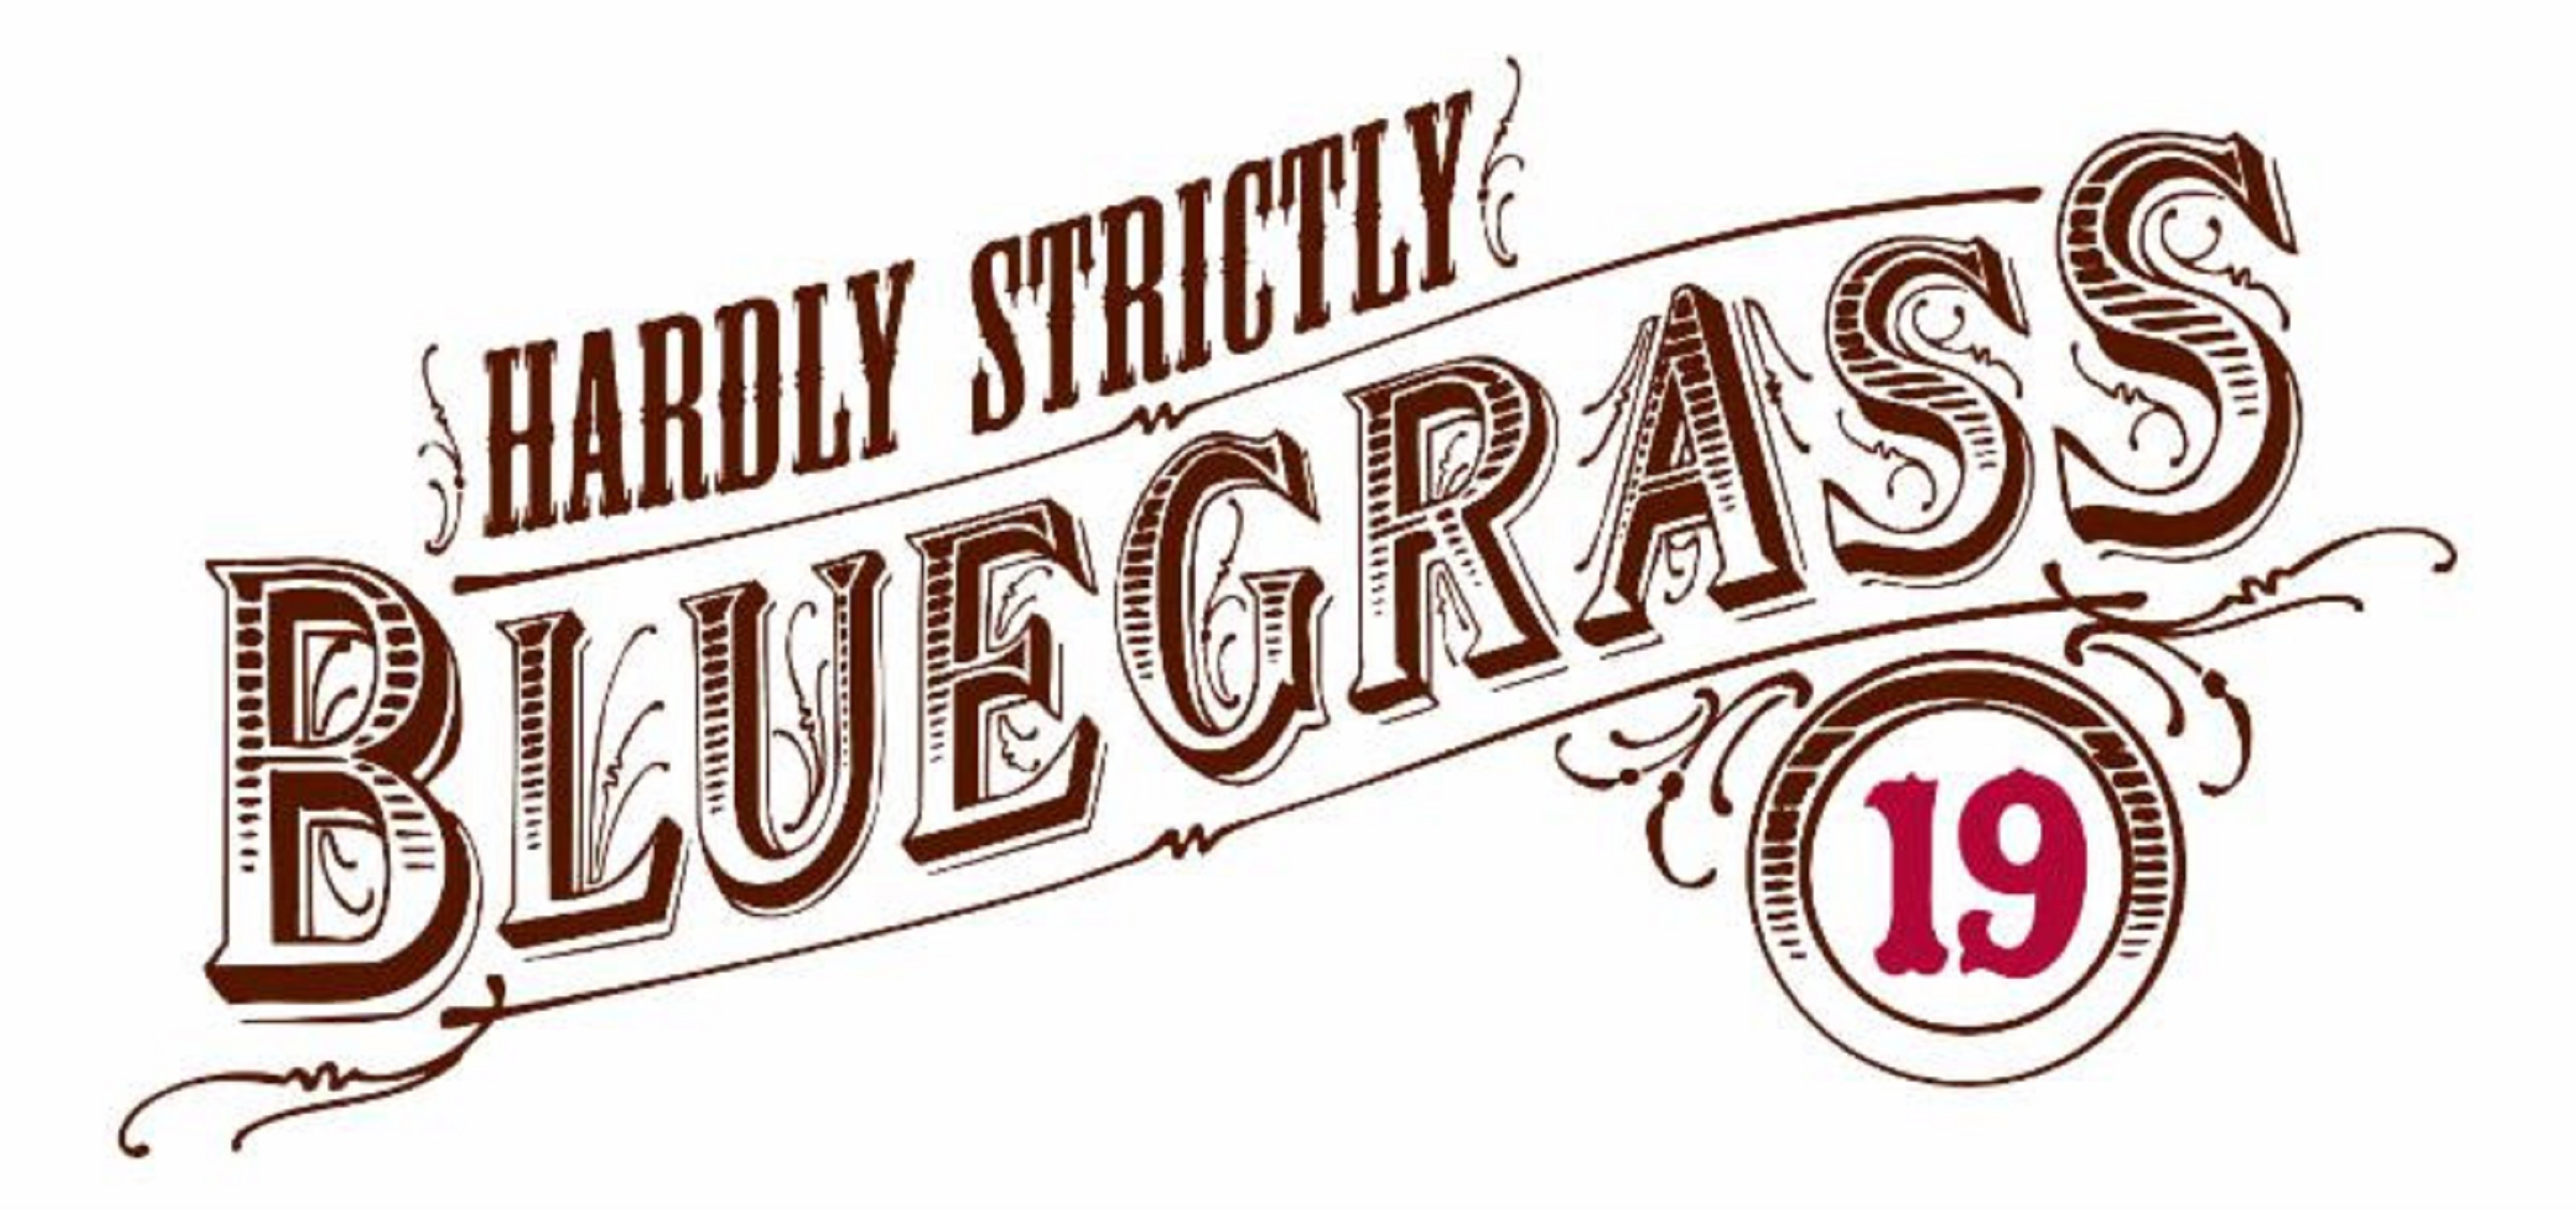 Hardly Strictly Bluegrass Announces Fourth Round Of Lineup For 2019